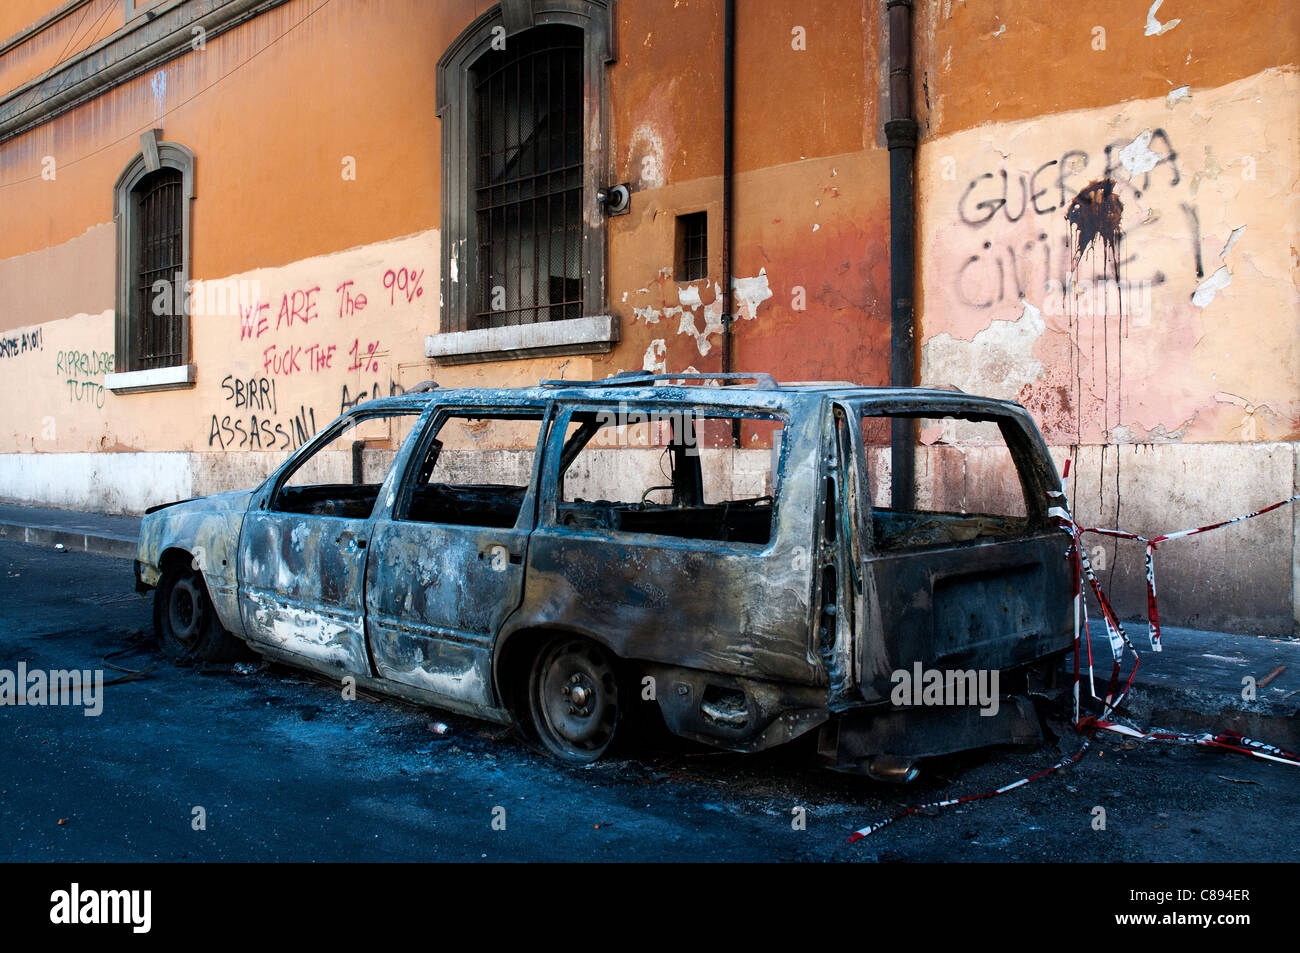 ROME, Italy, 16/10/2011 Torched car after black bloc rampage during the global 'Day of Rage' - Stock Image